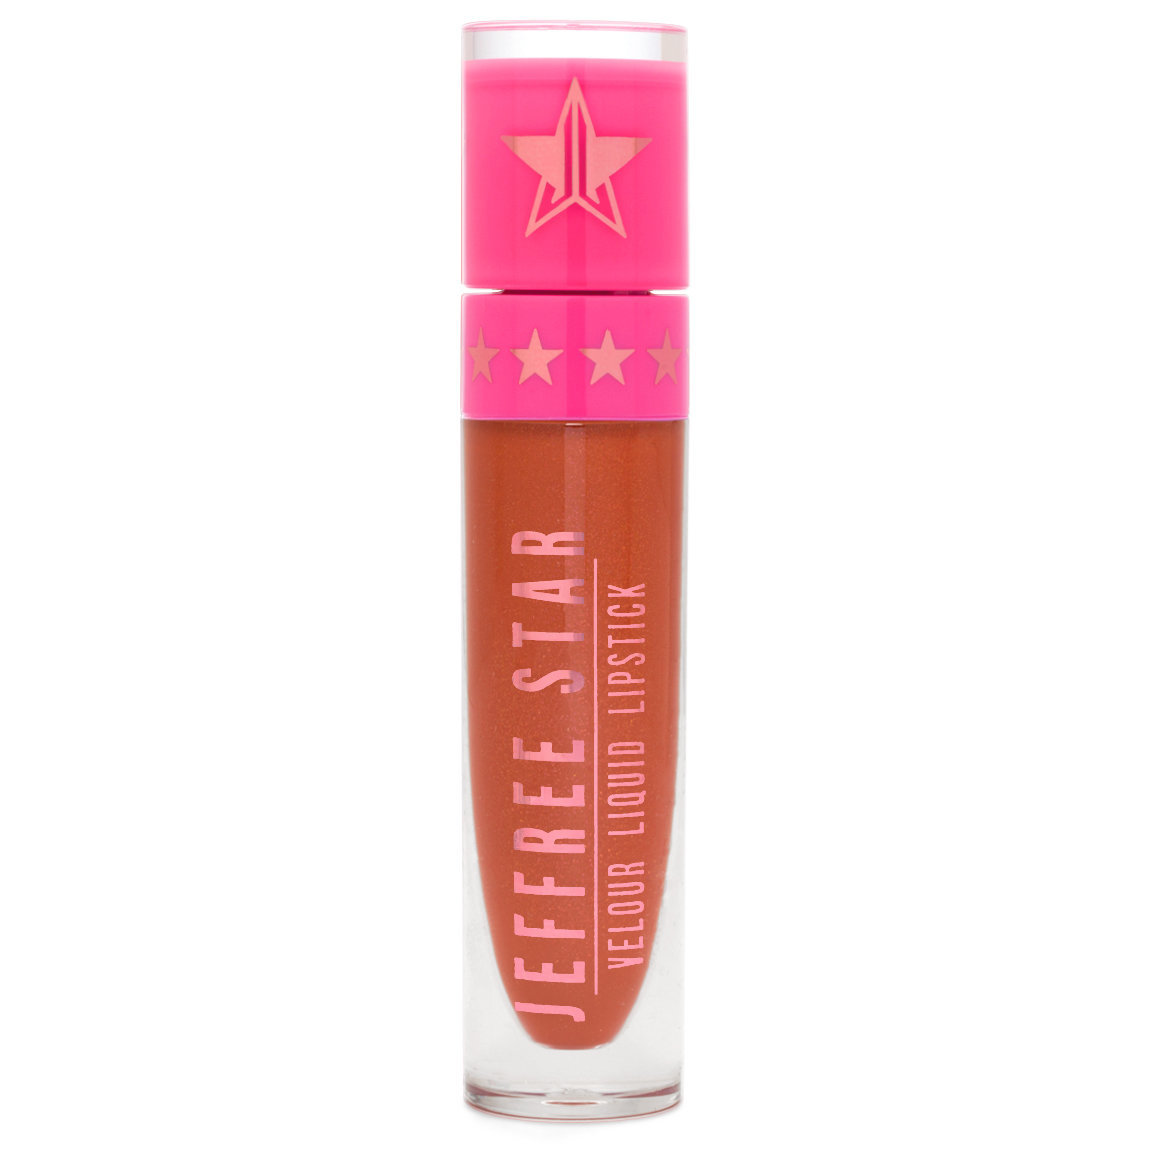 Jeffree Star Cosmetics Velour Liquid Lipstick Pumpkin Pie